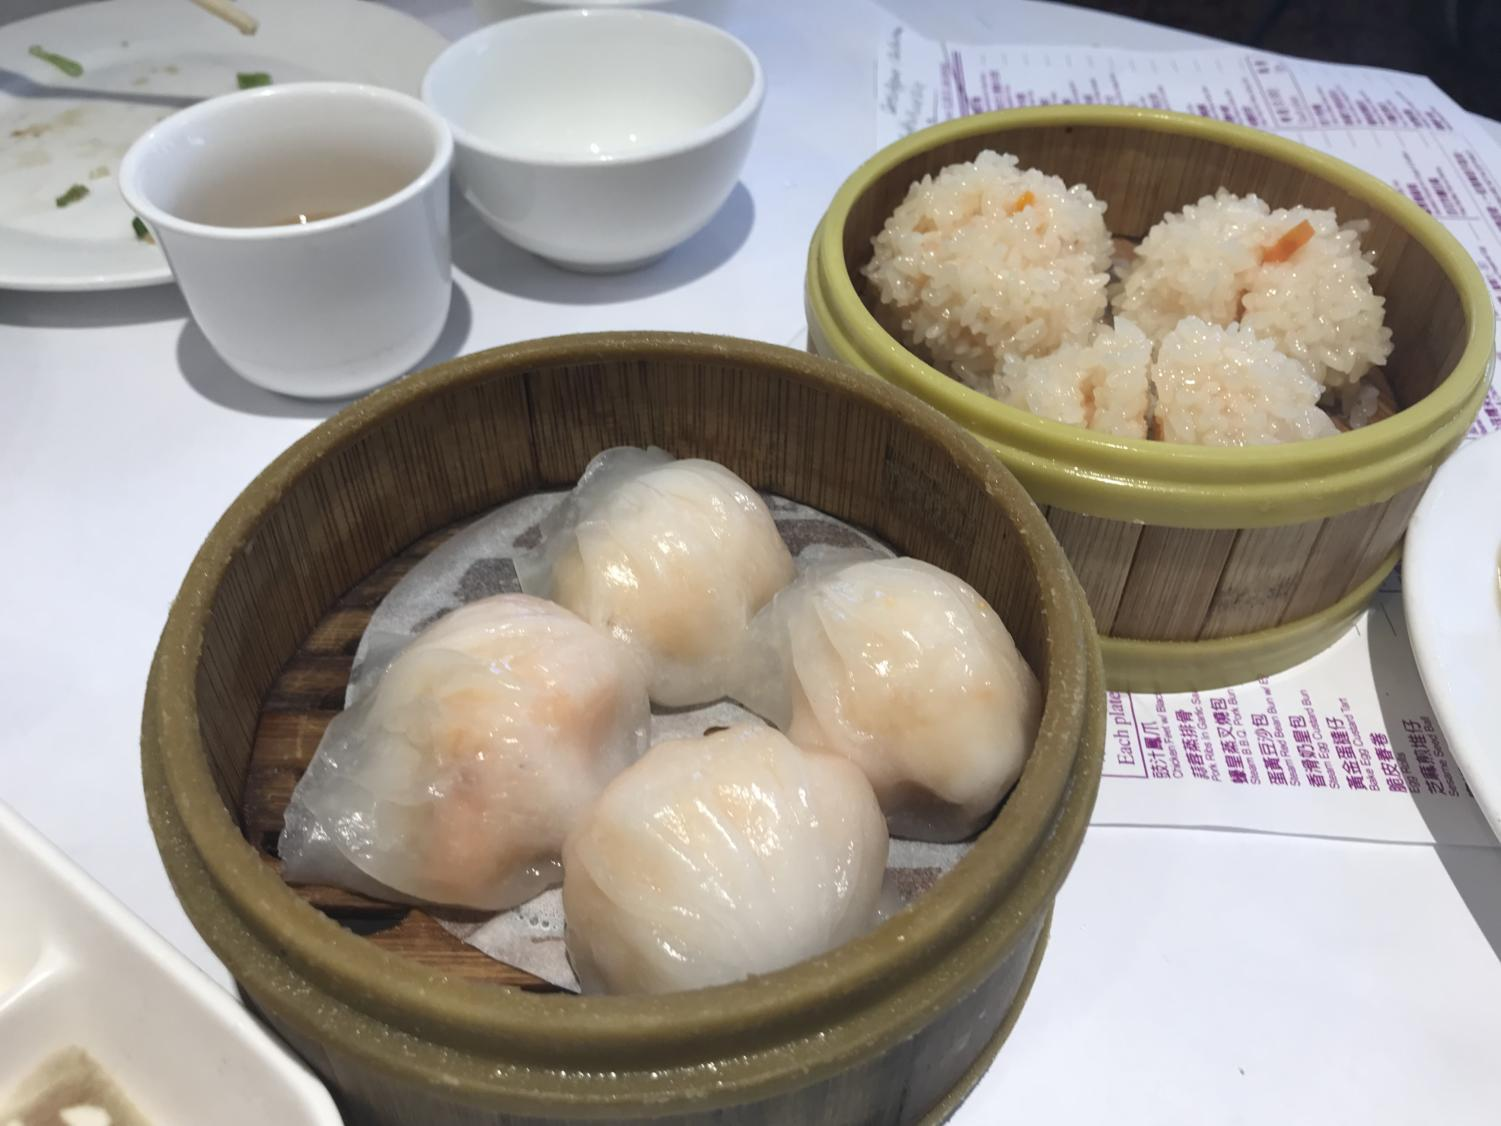 The dumplings served at Hong Kong Seafood never fail to impress.